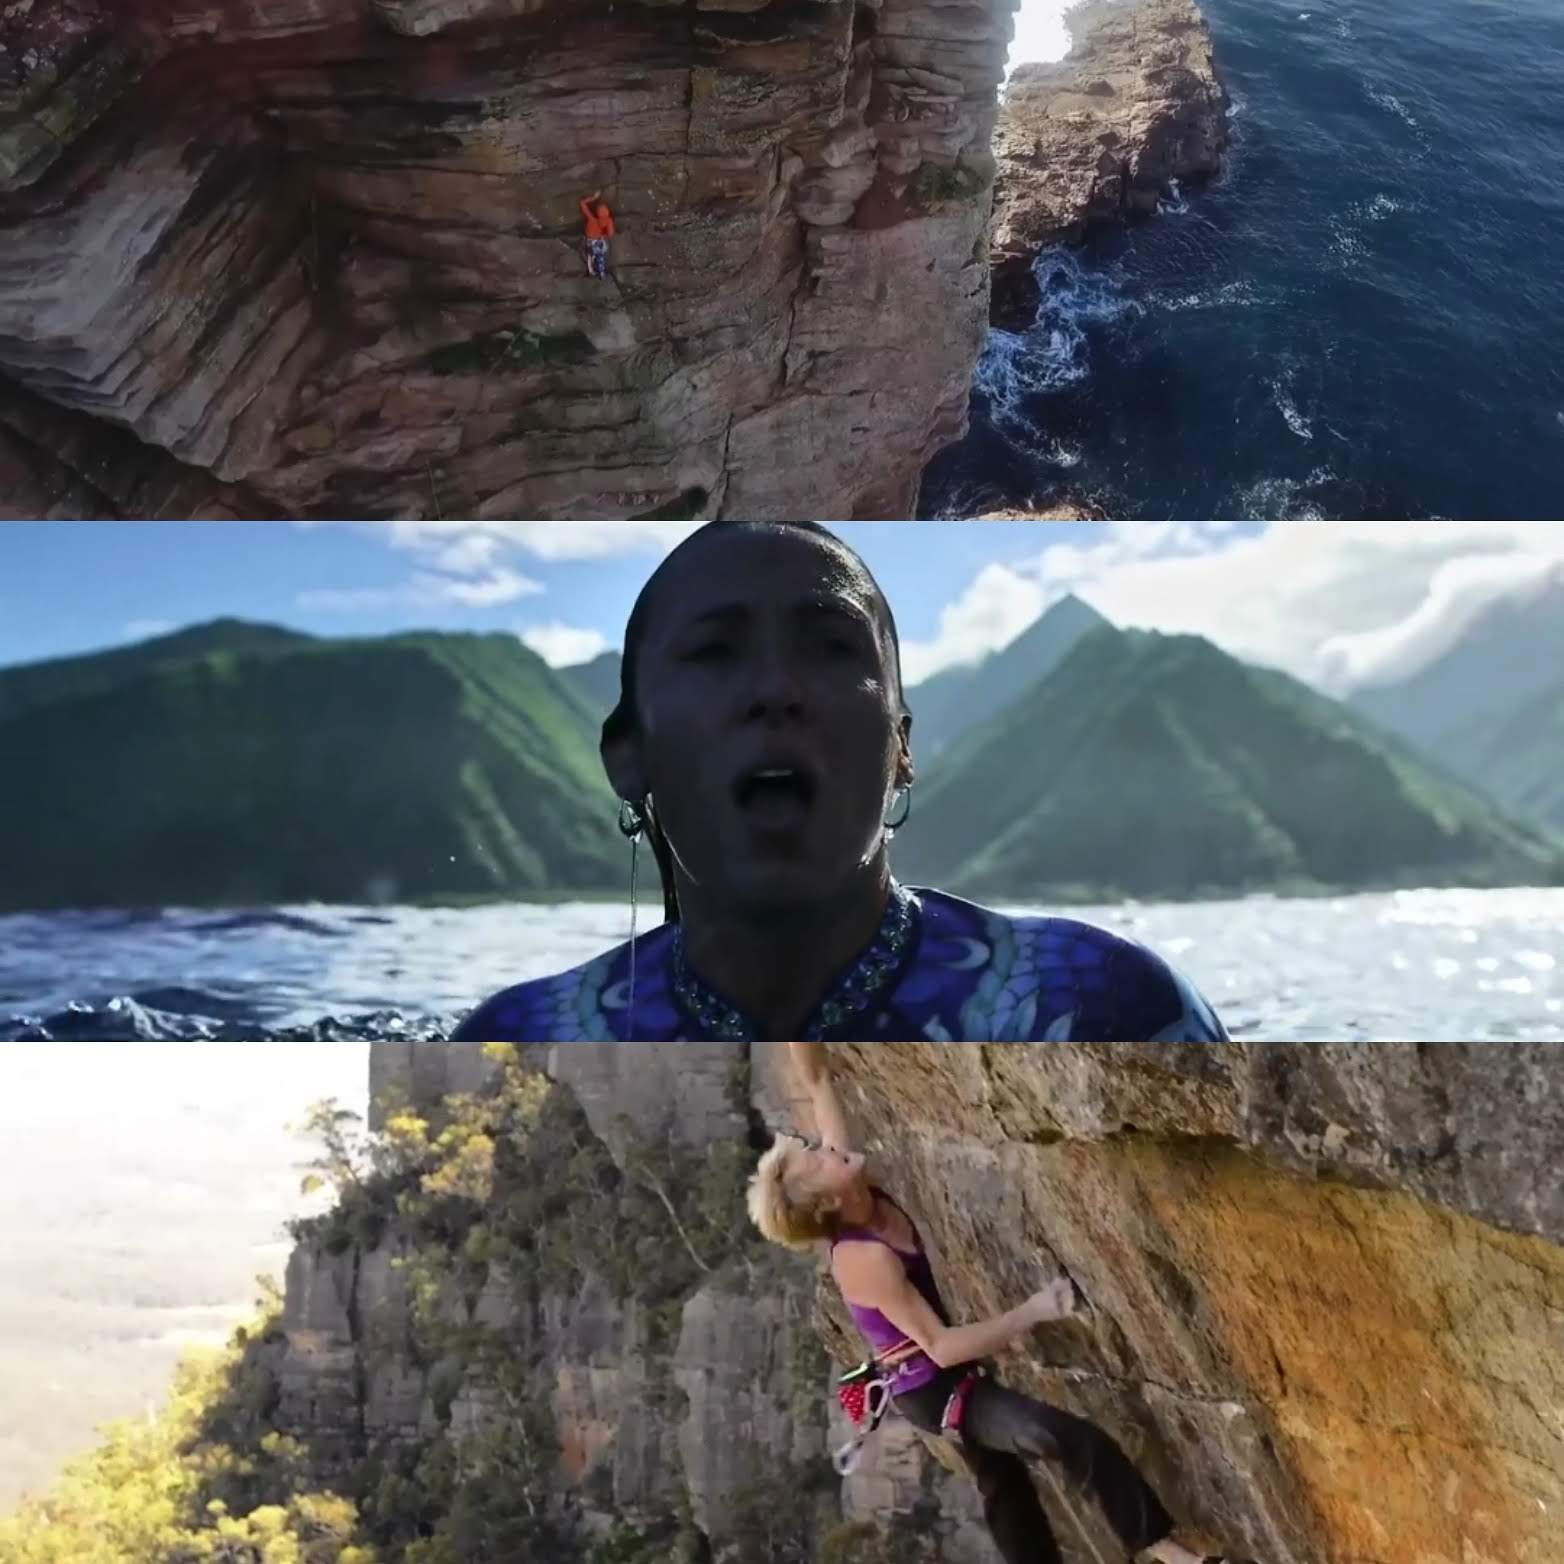 Climbing, swimming picture